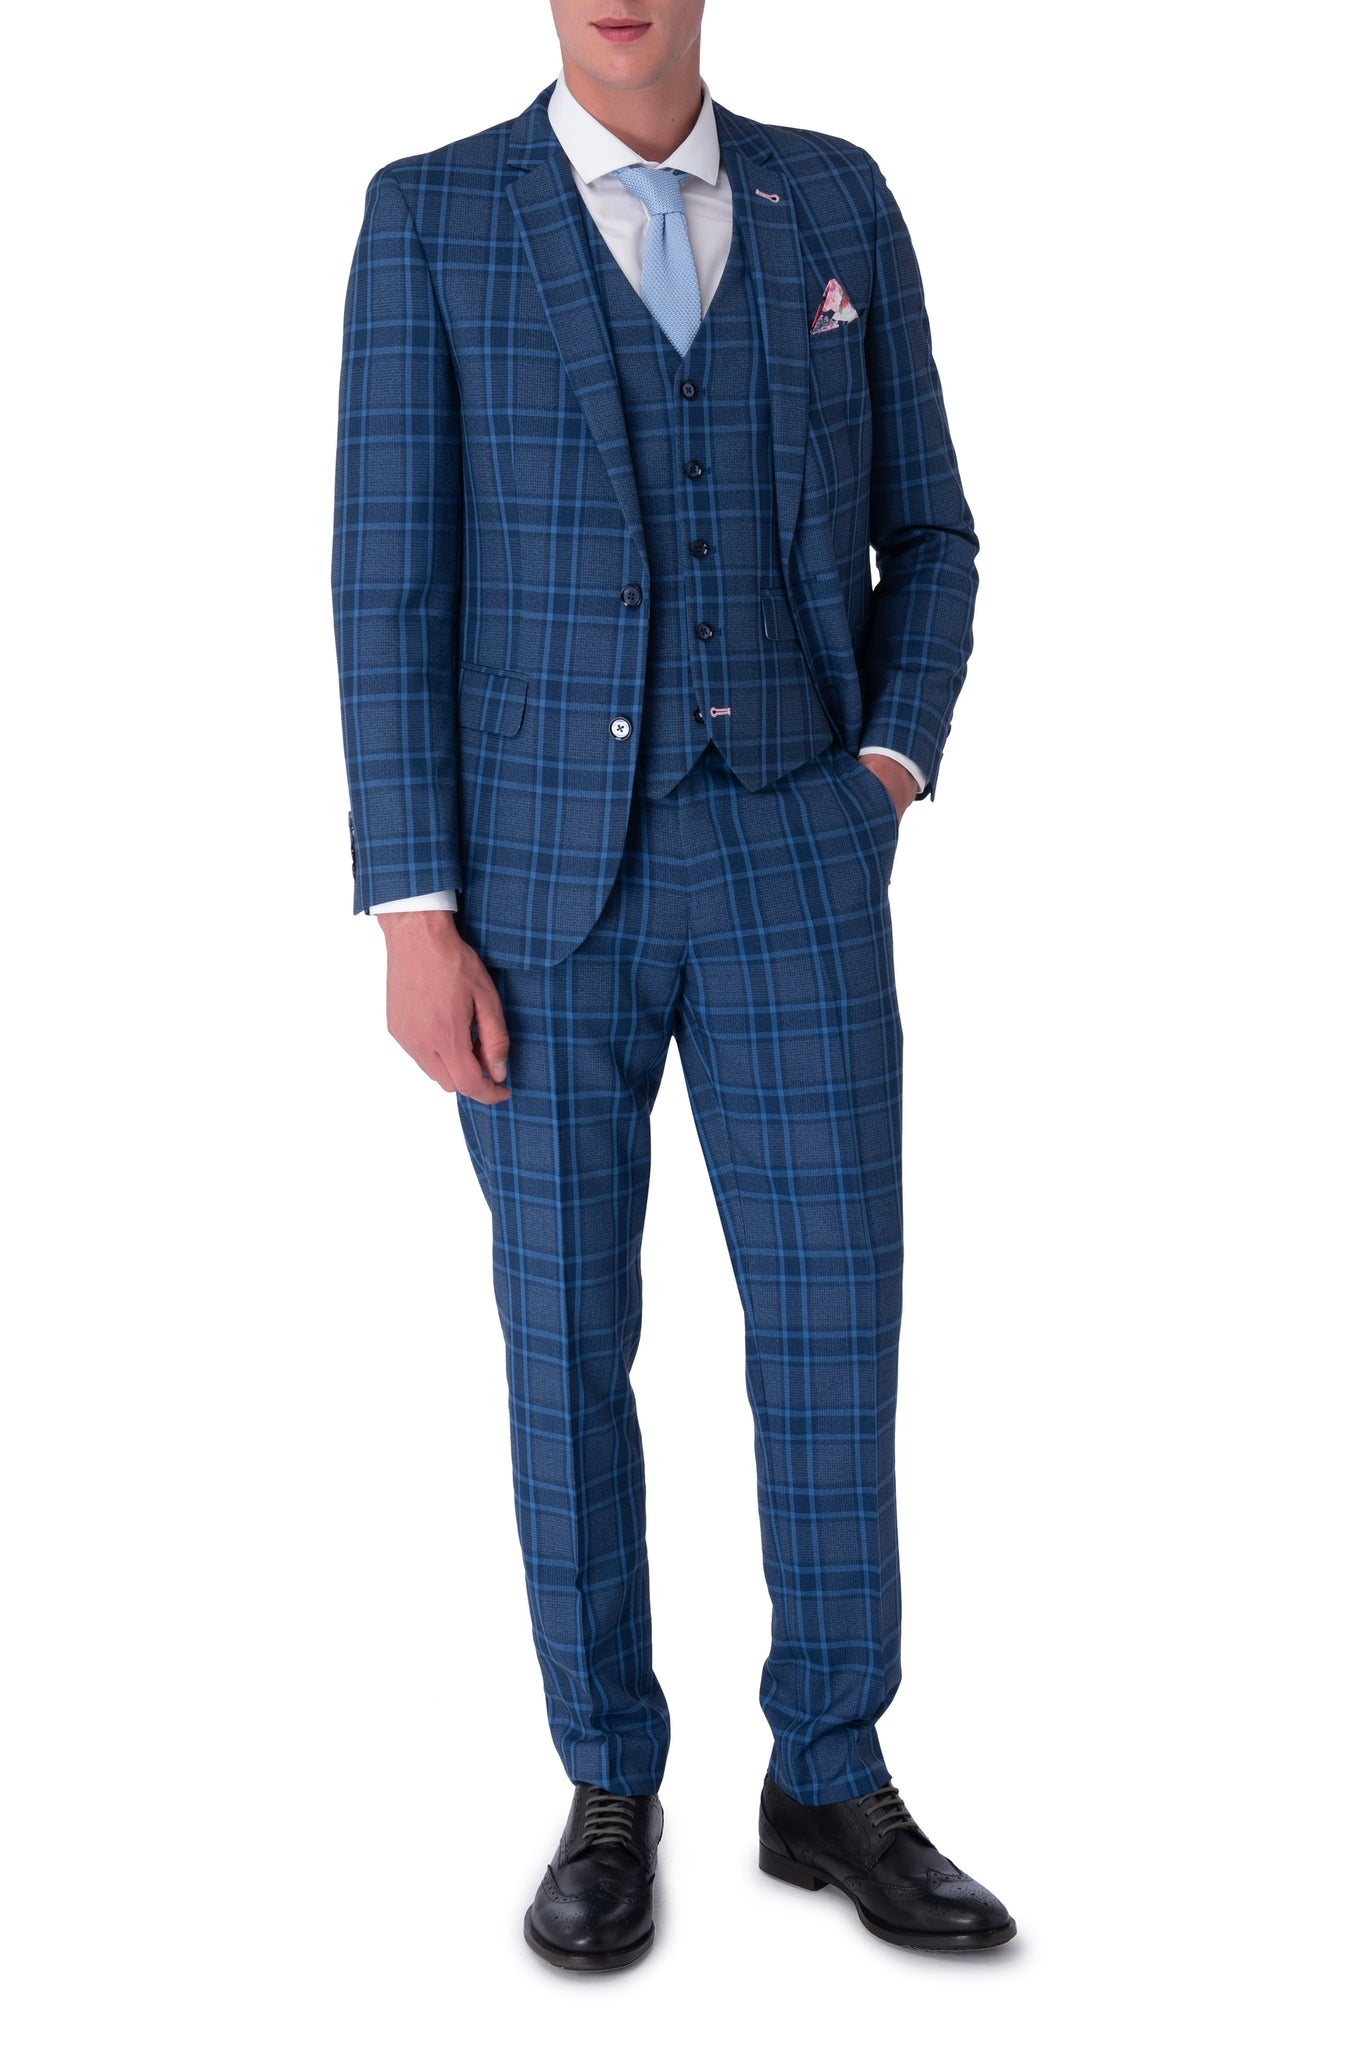 HENRY Blue Check Three Piece Slim Fit Suit